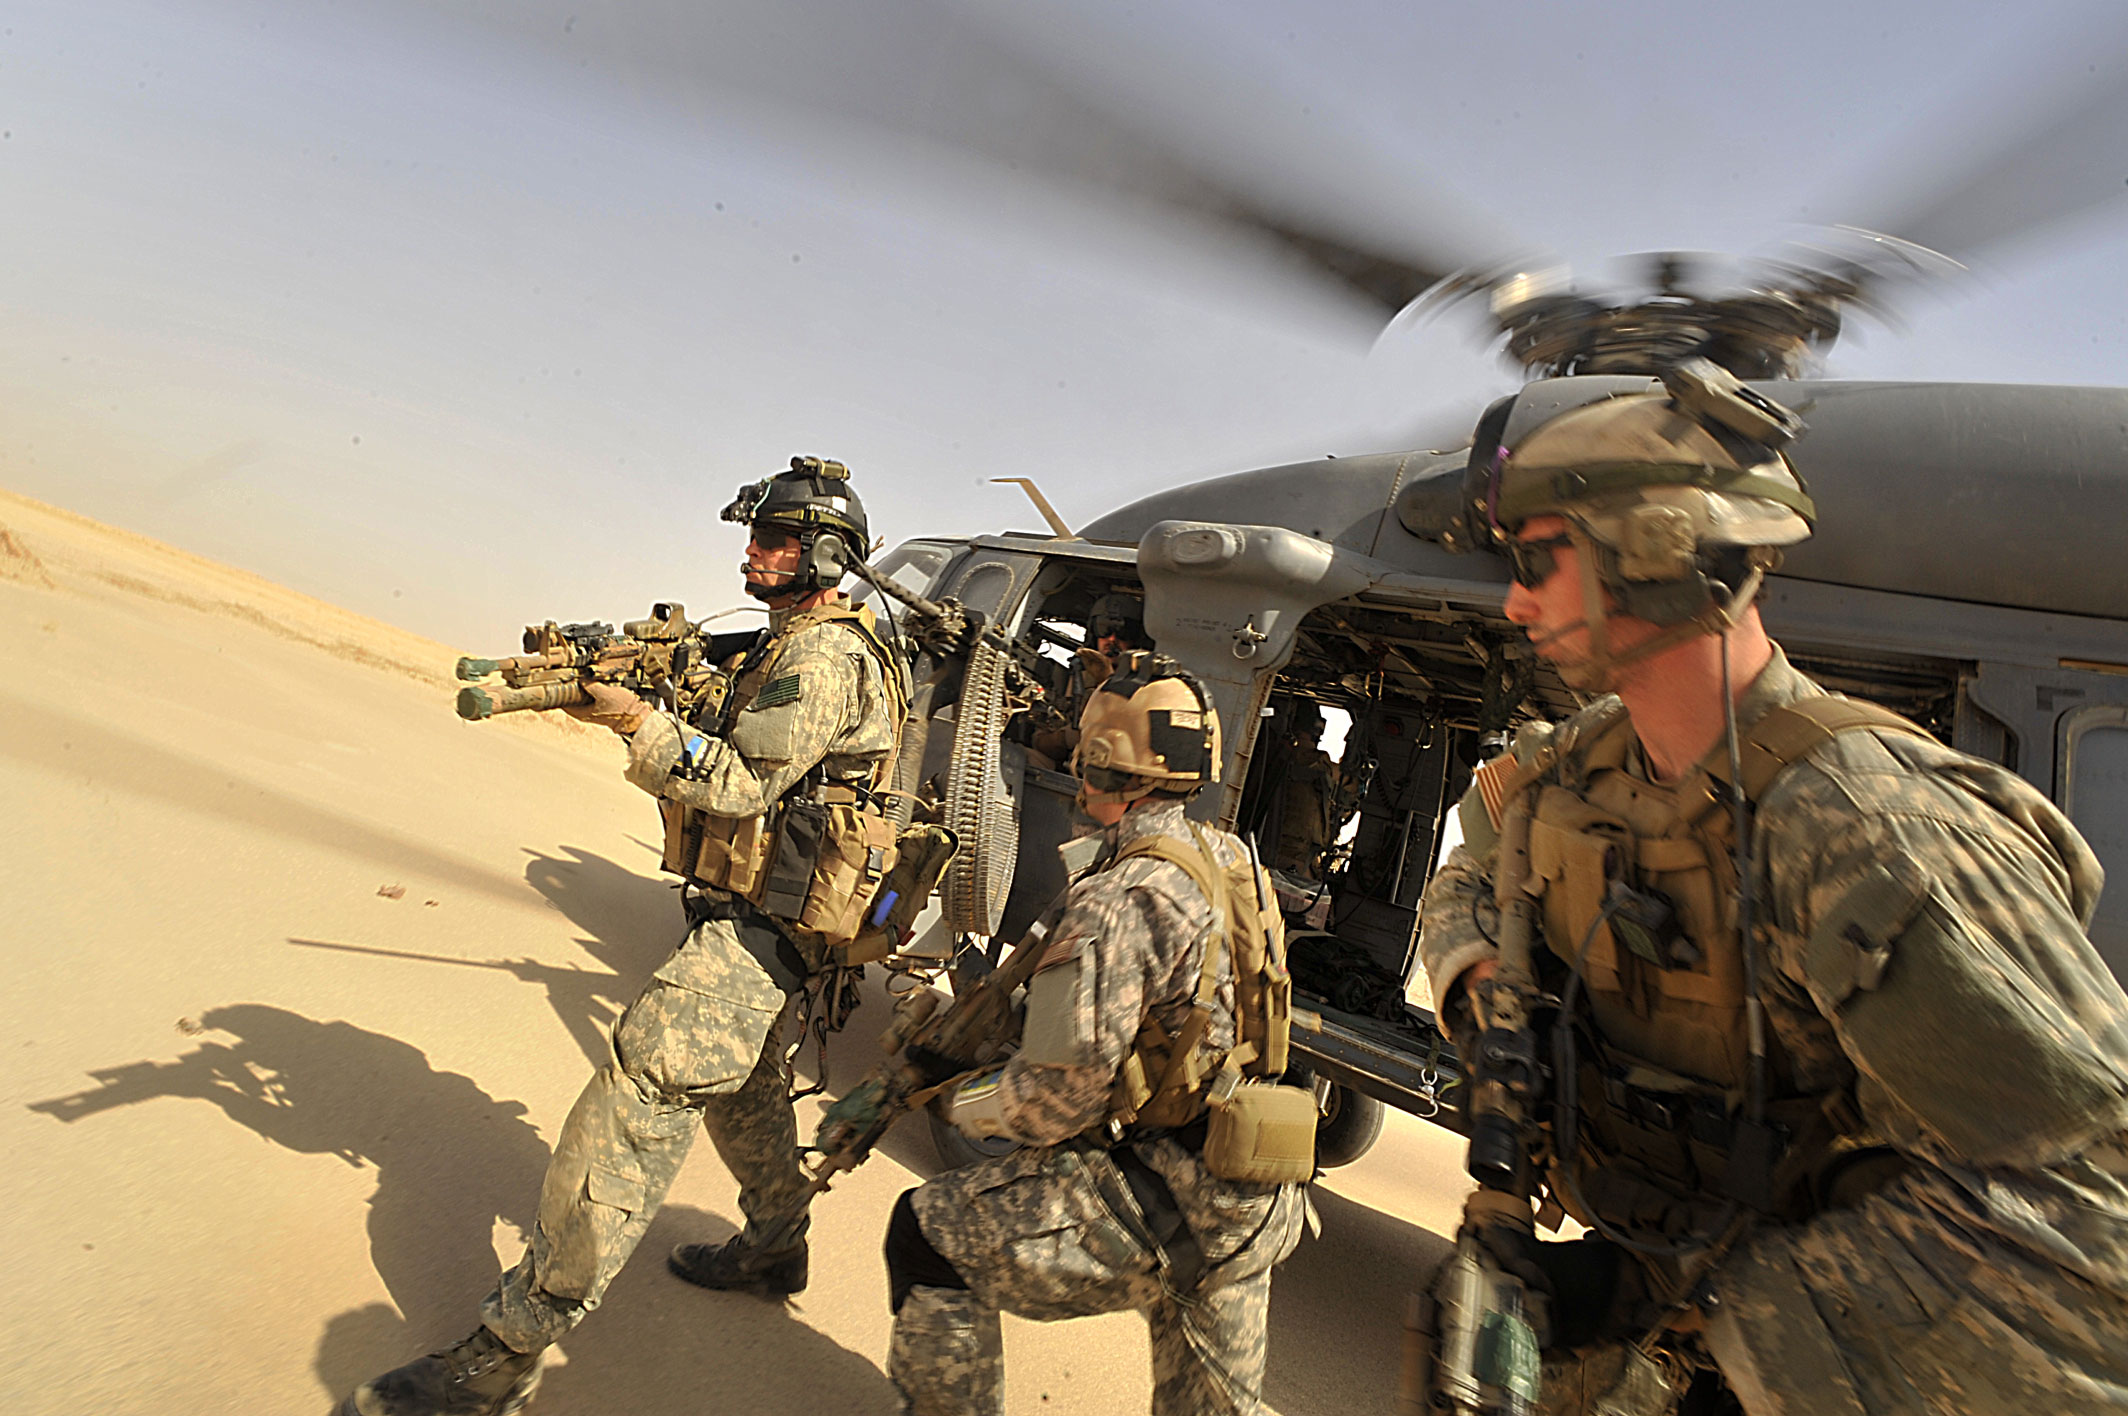 Download Air Force Pararescue Wallpaper Gallery